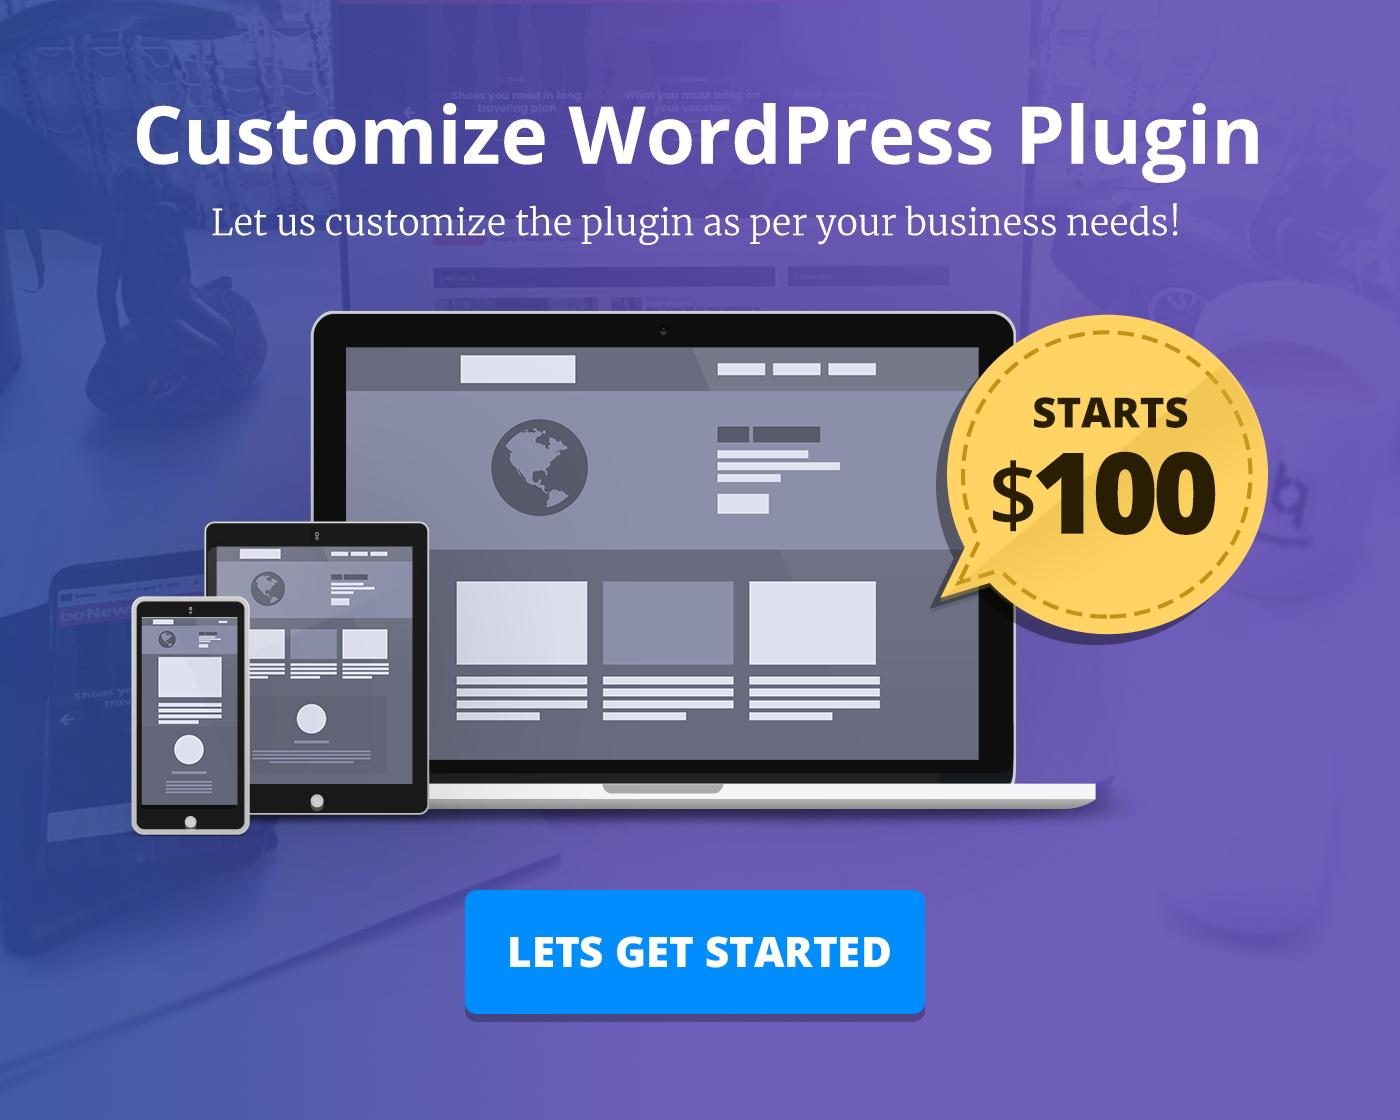 WordPress Plugin Customization by BloomPixel - 110954